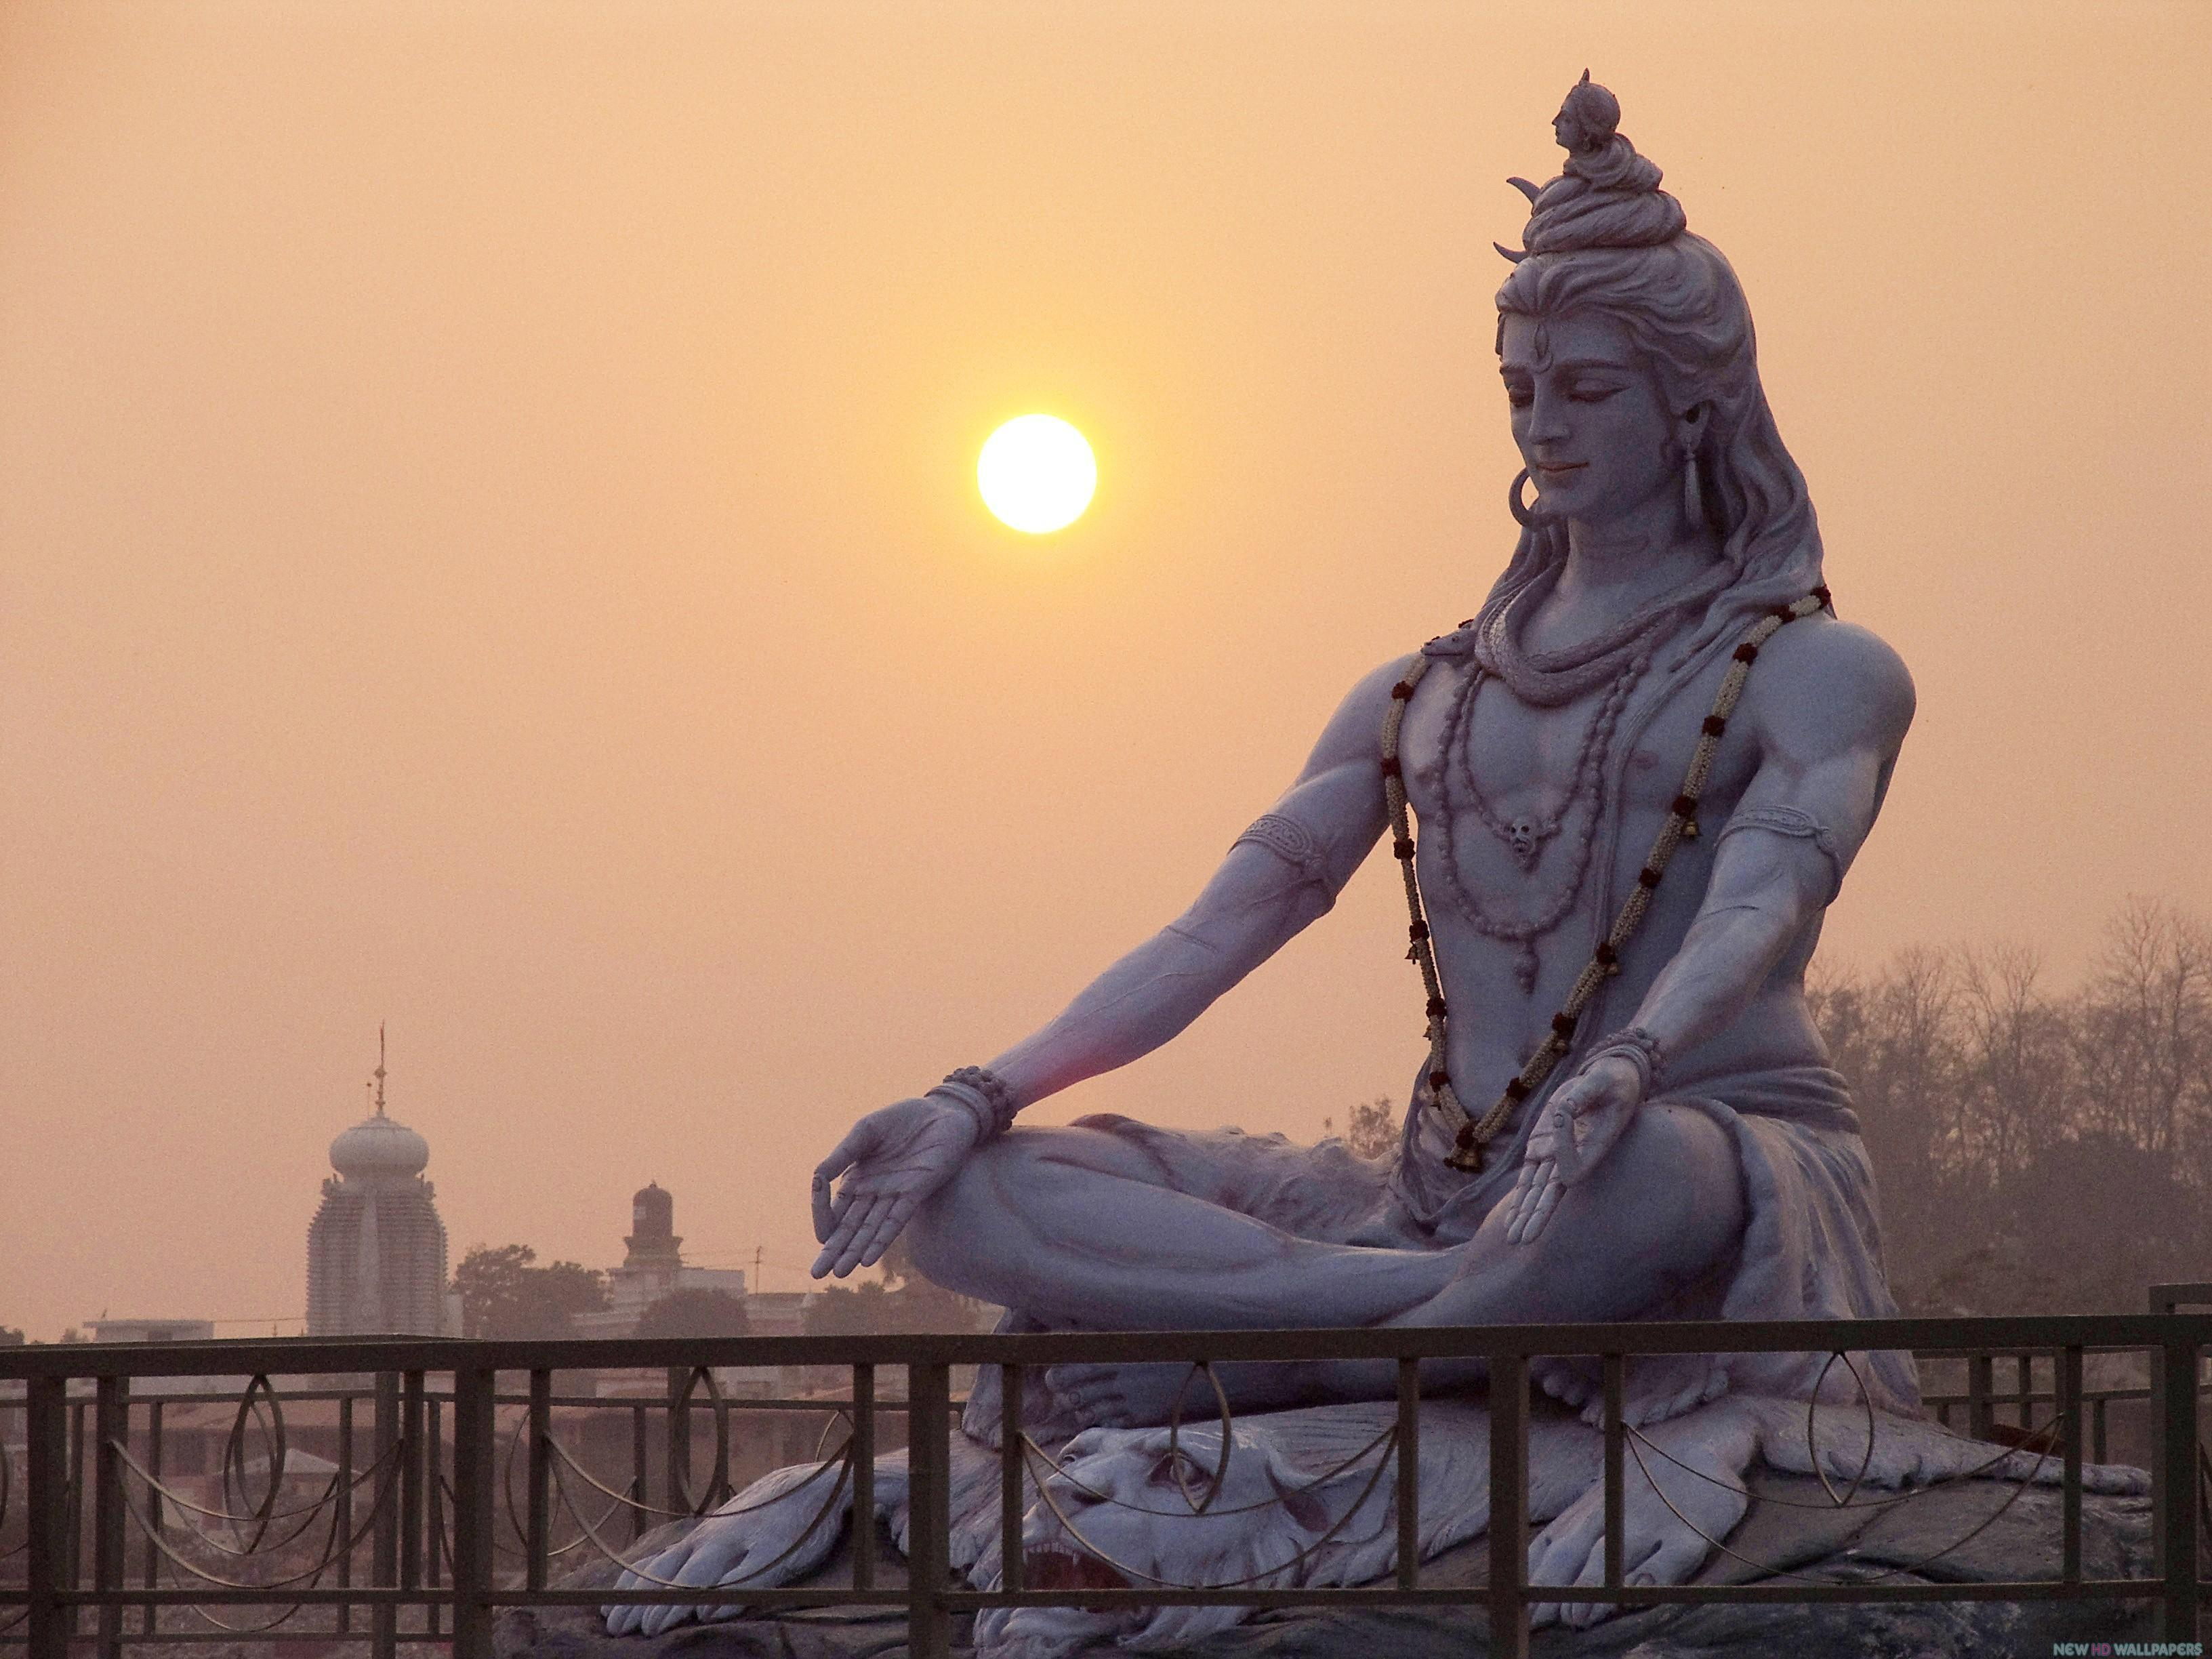 Lord Shiva 4k Wallpapers - Top Free Lord Shiva 4k ...